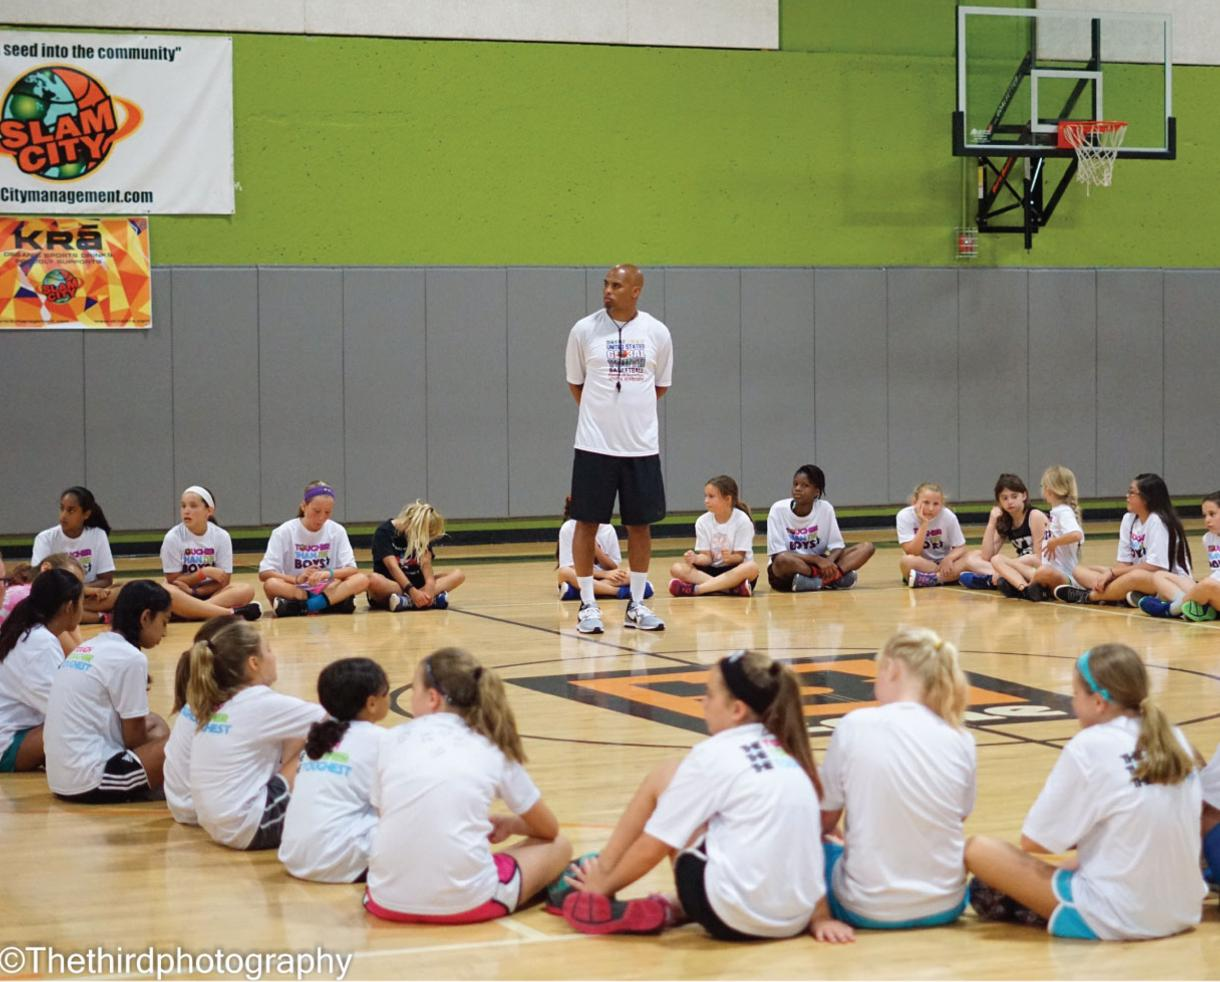 One Week of Slam City Basketball Camp at nZone